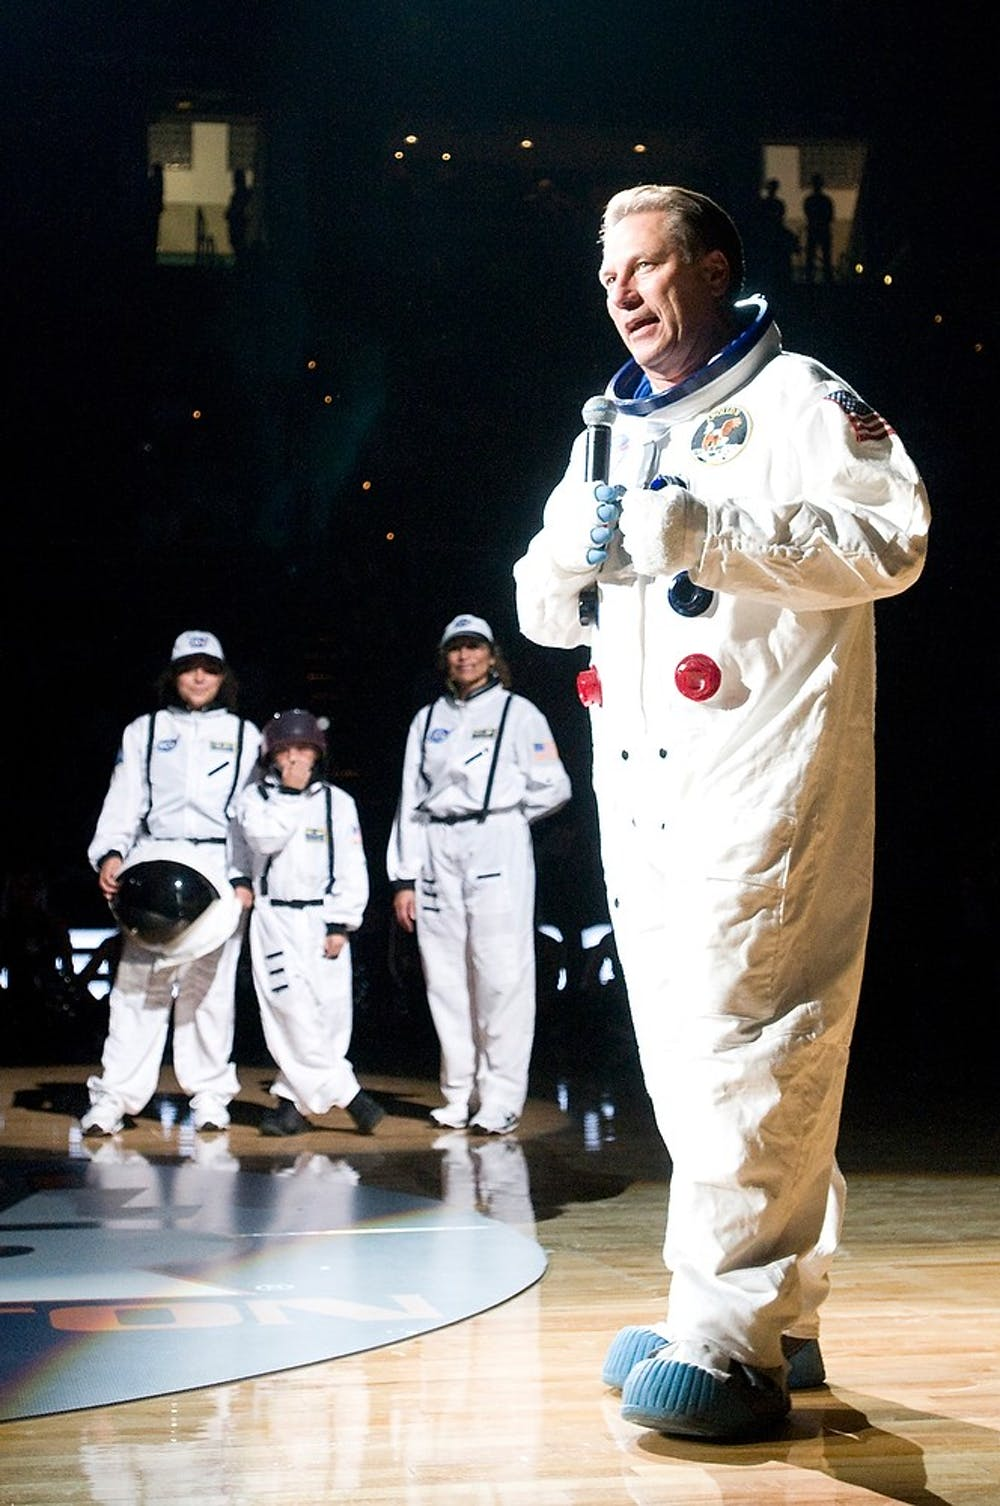 <p>Head coach Tom Izzo talks with students and spectators in an astronaut outfit as his family stands behind him during Midnight Madness Friday, Oct. 15, 2010, evening at Breslin Center. Sam Mikalonis/The State News</p>